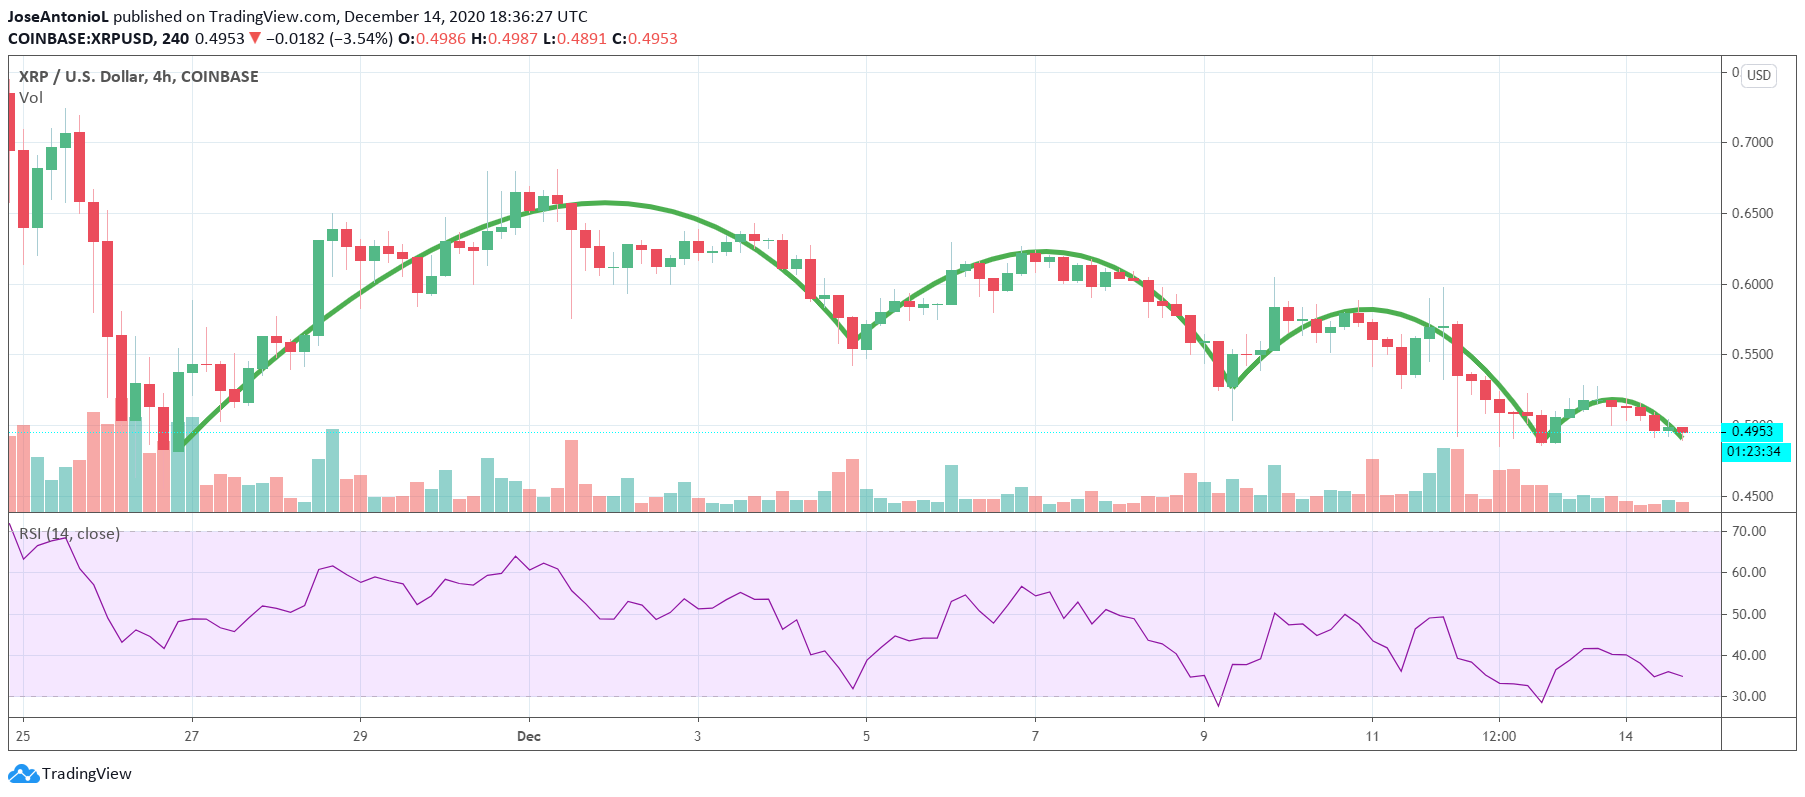 XRP-USD 4 hour chart. Image: Tradingview